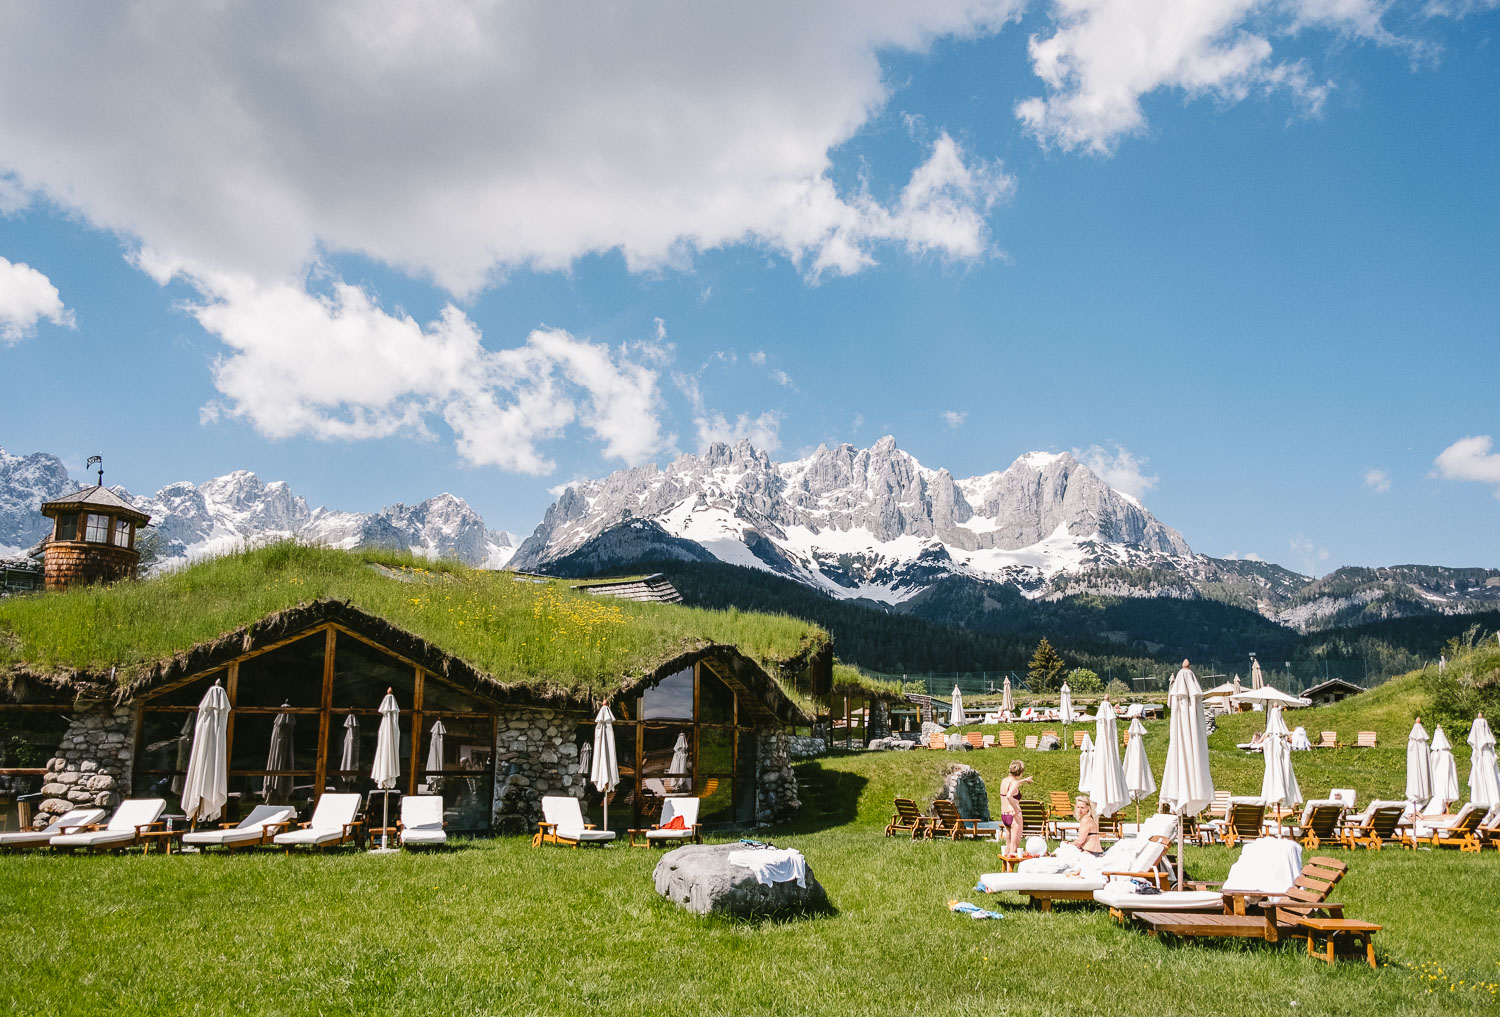 Outdoor spa and pools with Wilder Kaiser mountin panorama in the background at Hotel Stanglewirt in Going near Kitzbuehel in Tyrol, Austria. CREDIT: Stefan Fuertbauer  for The Wall Street JournalKitzbuehel Scenesetters